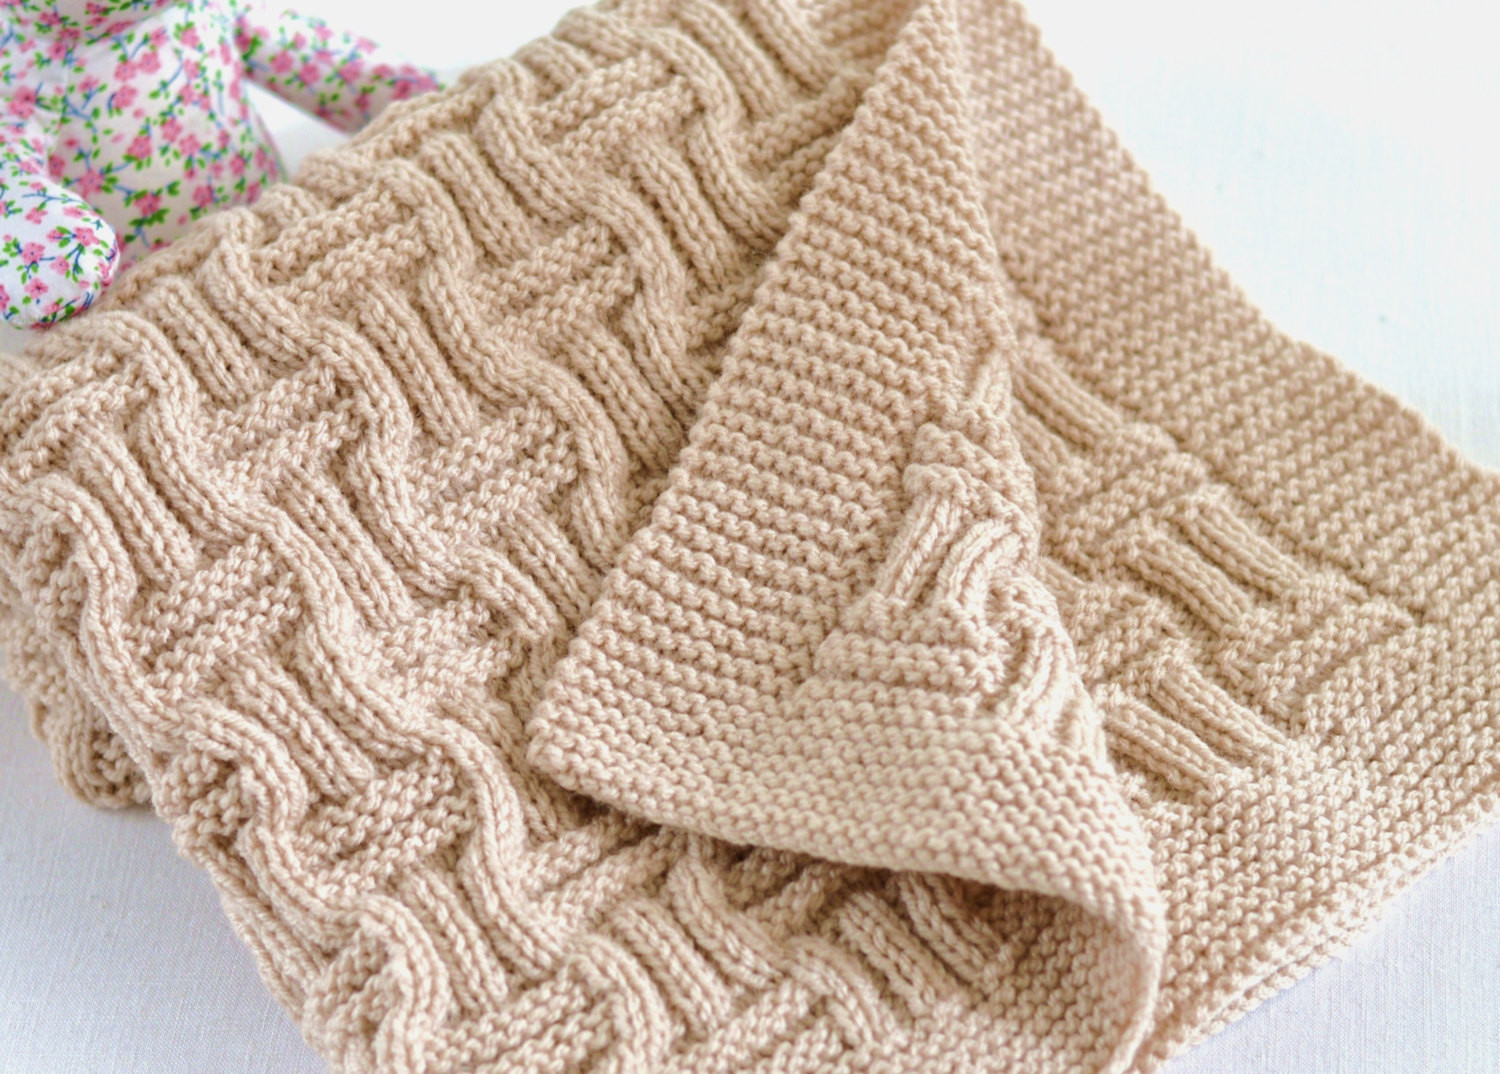 Knitting A Baby Blanket for Beginners Unique Easy Knitting Patterns for Beginners Baby Of Marvelous 48 Ideas Knitting A Baby Blanket for Beginners